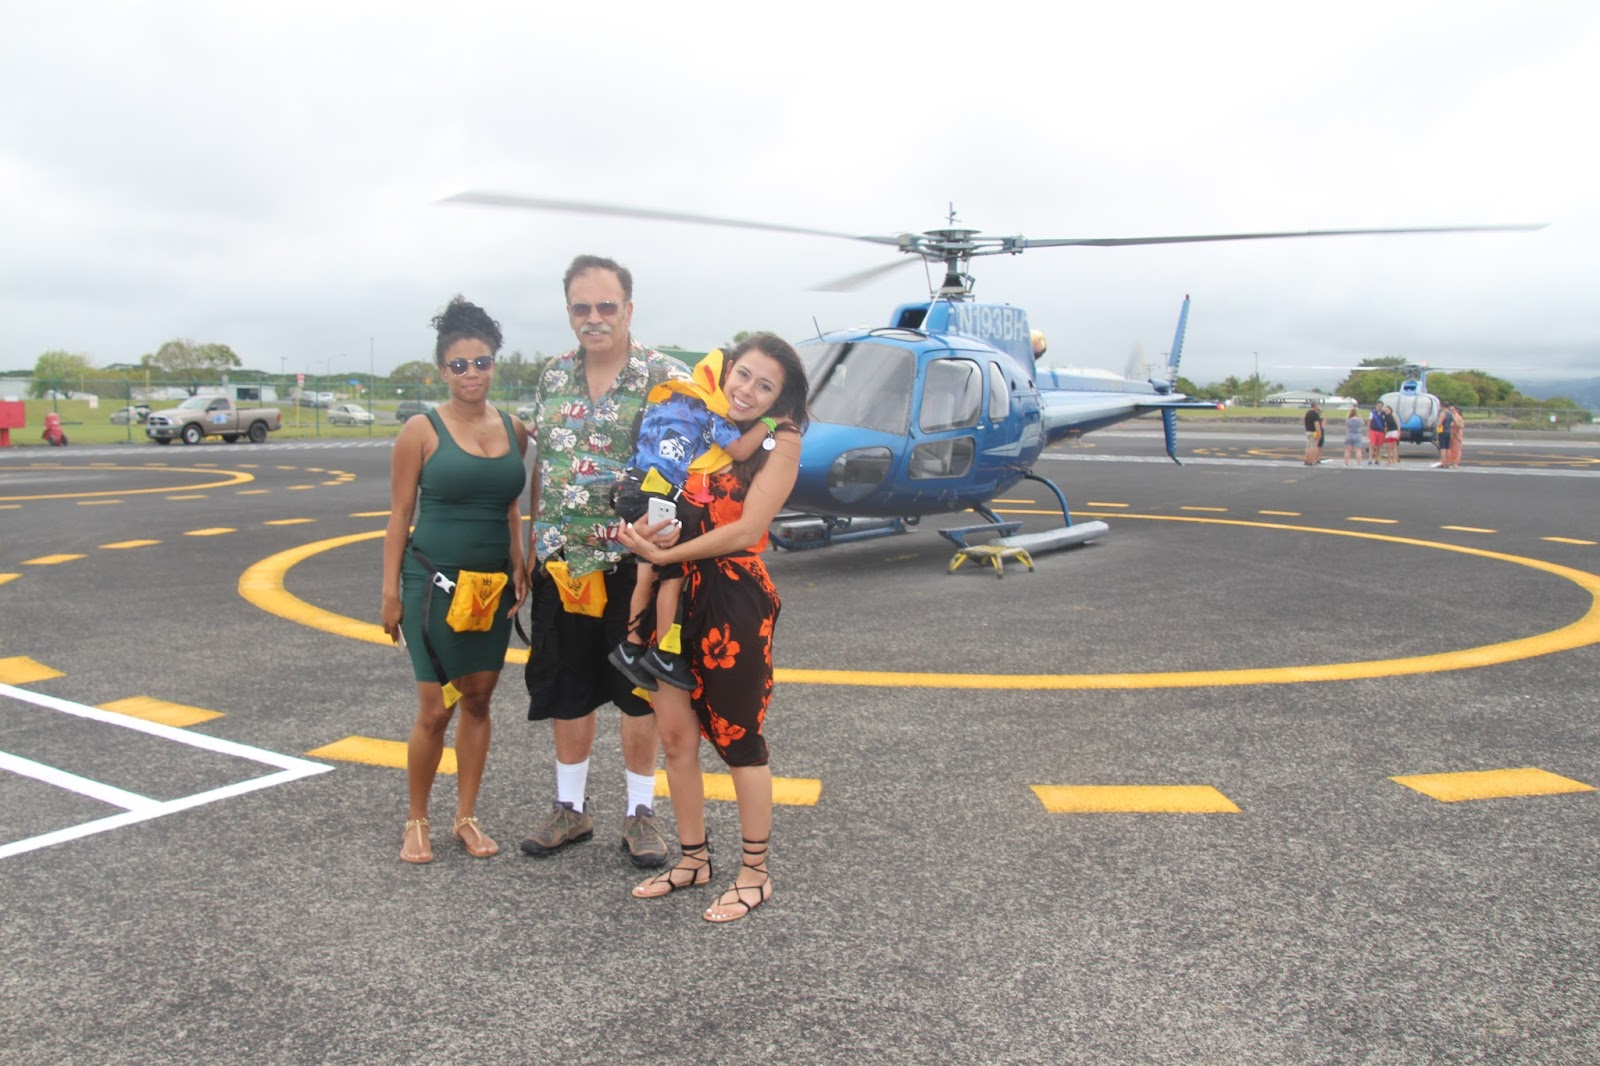 blue hawaiian helicopters reviews with Two Hawaii Reviews Posted At Tripadvisor on Blue Hawaiian Helicopters together with Helicopter Rides furthermore LocationPhotoDirectLink G60623 D1173556 I121613875 Blue Hawaiian Helicopters Kauai Lihue Kauai Hawaii furthermore LocationPhotoDirectLink G60982 D1452455 I120563353 Blue Hawaiian Helicopters Oahu Honolulu Oahu Hawaii further bluehawaiian.